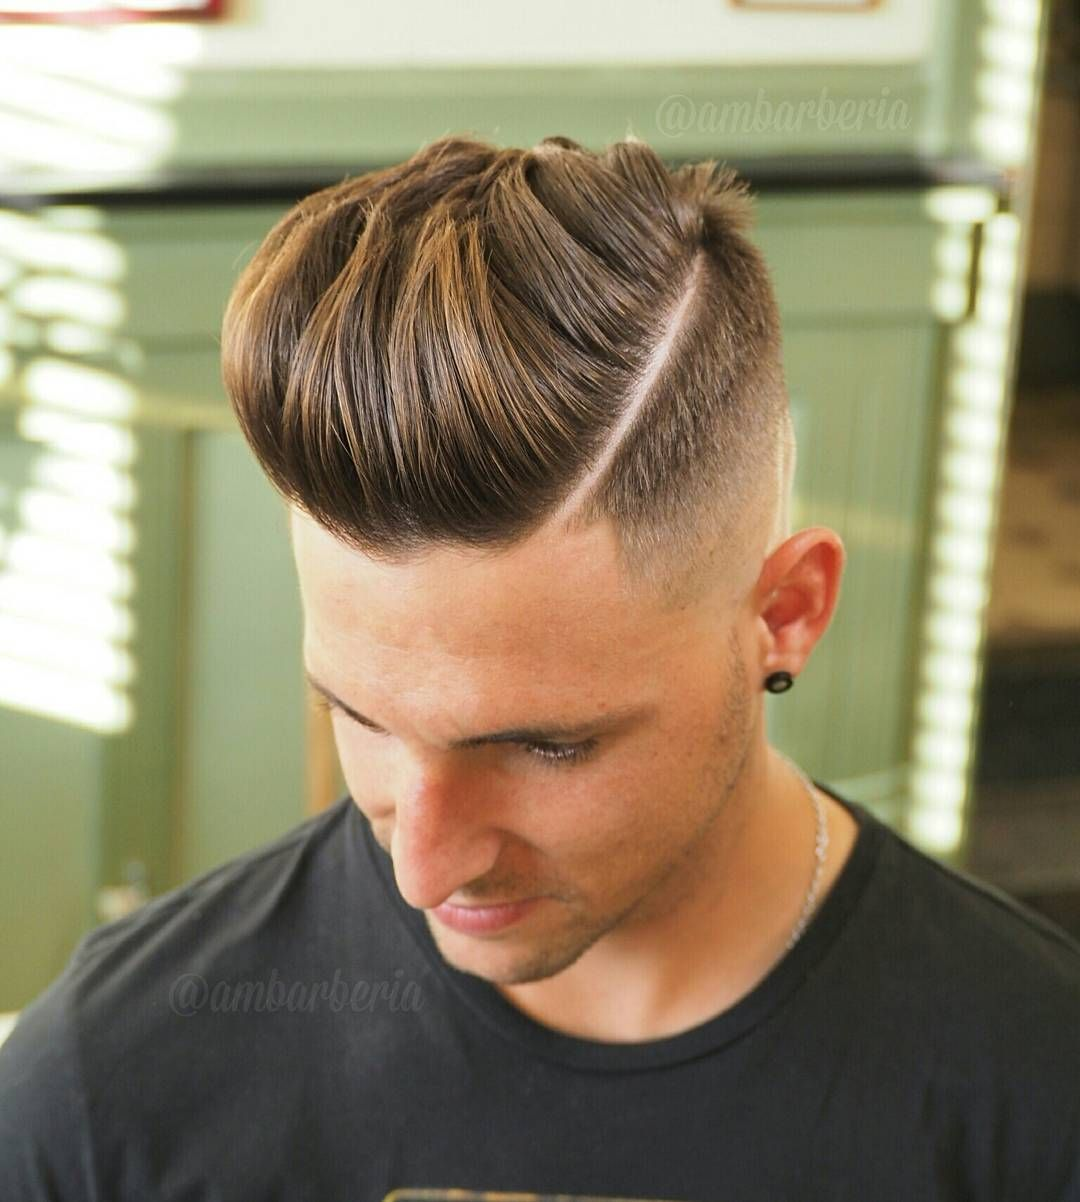 25 popular haircuts for men 2018 | men's hairstyle | pinterest